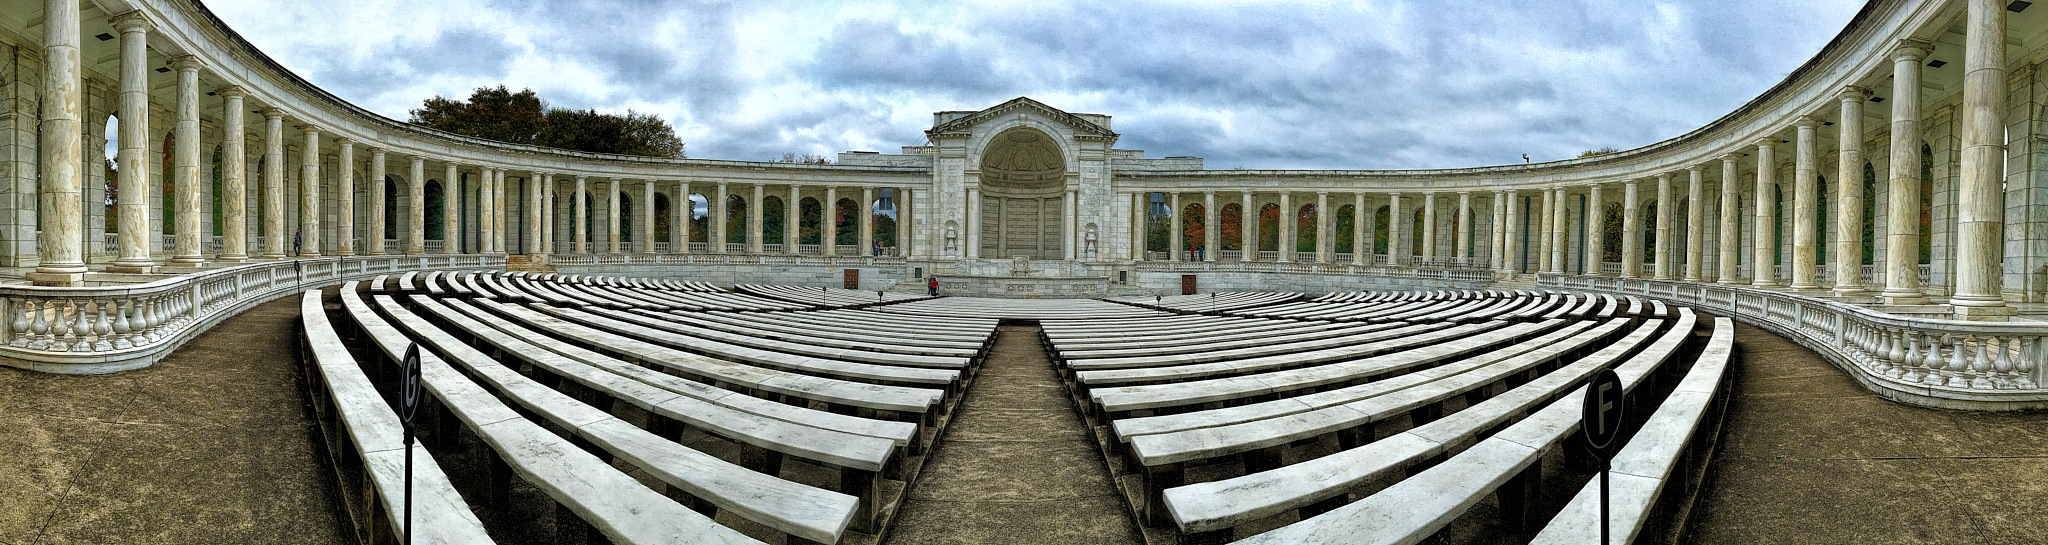 Arlington Panorama by JohnEllingson